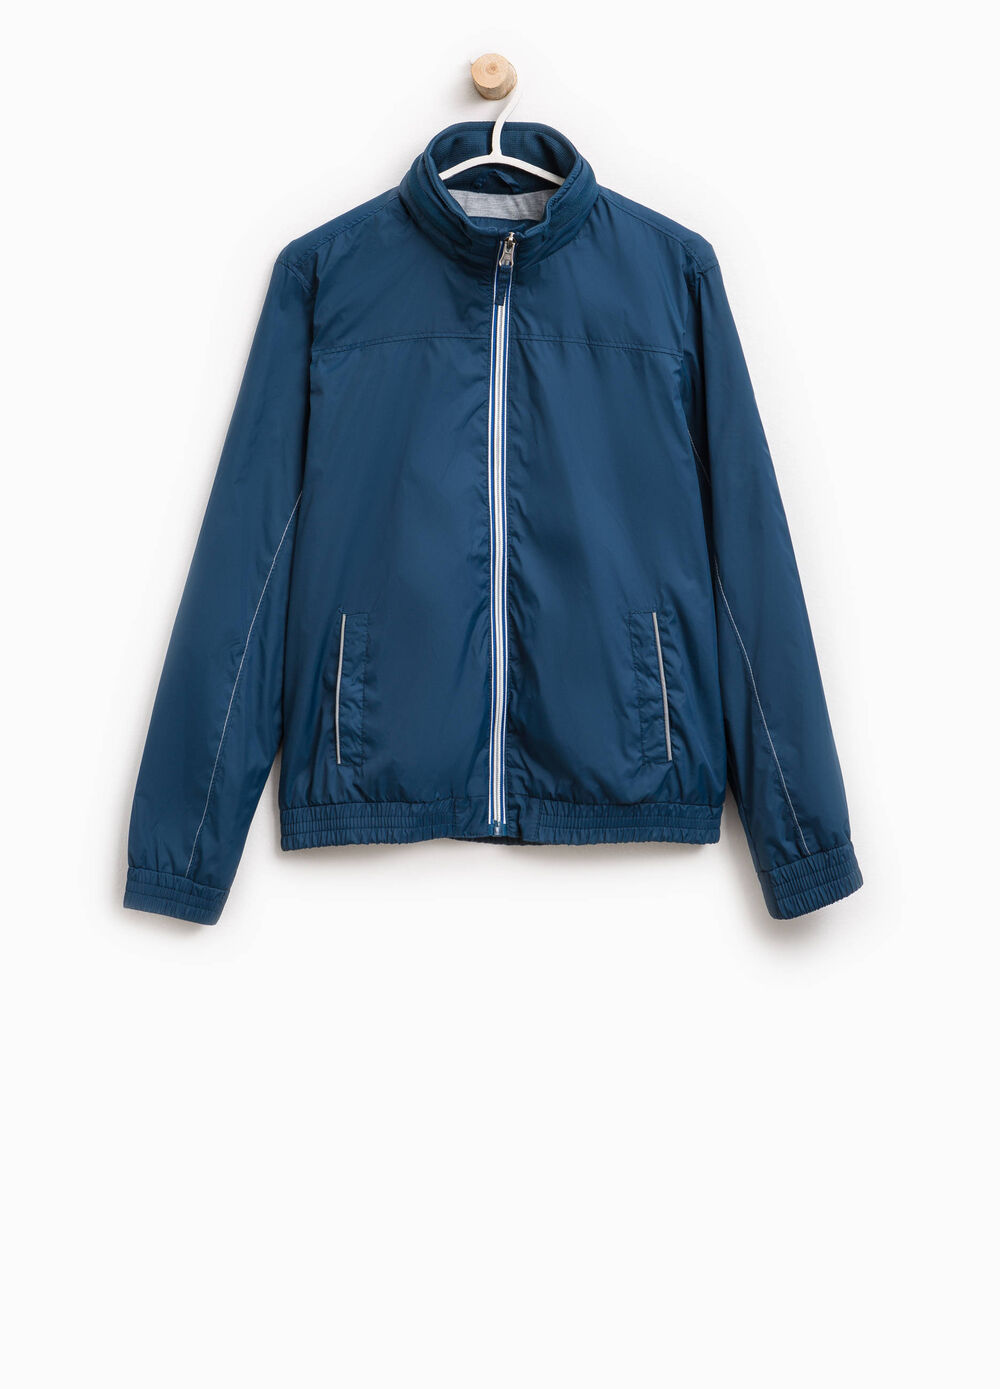 Solid colour jacket with high neck